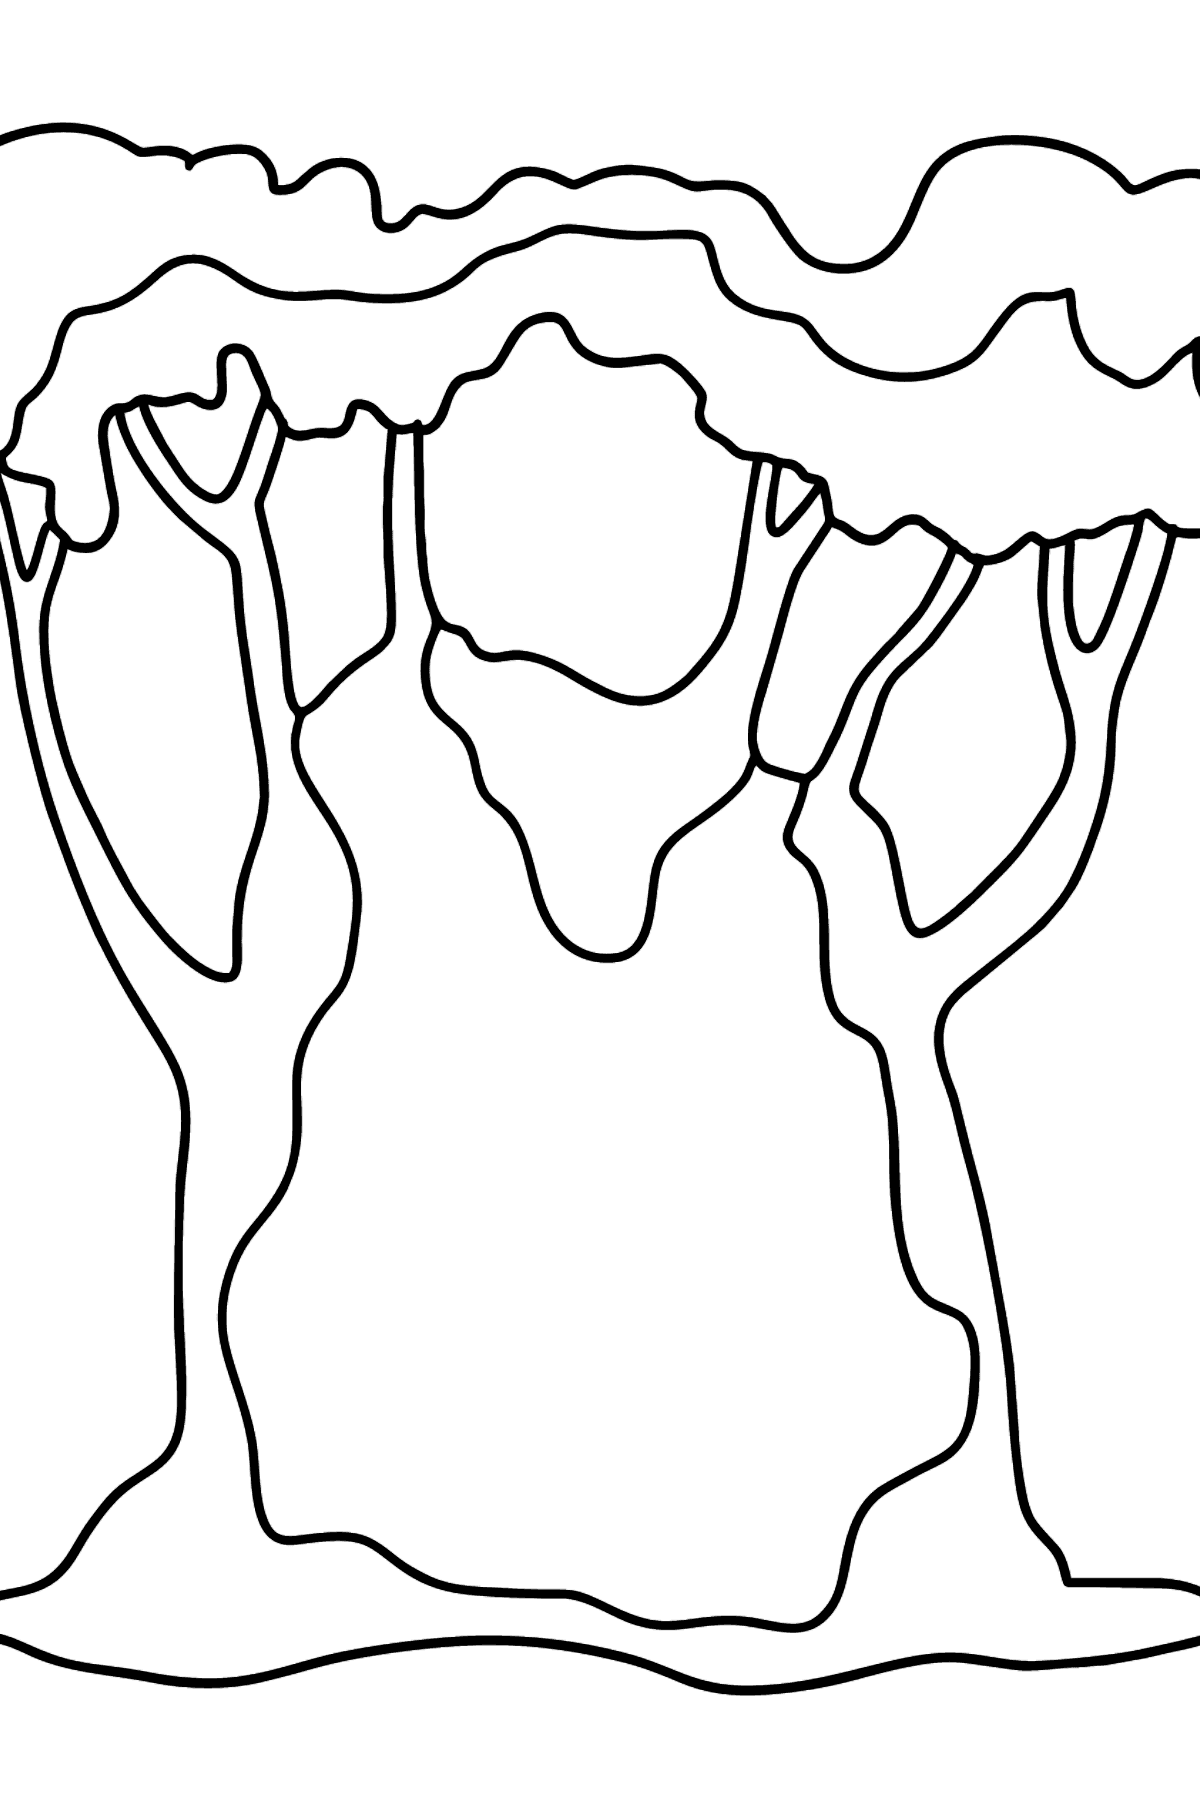 Baobab coloring page - Coloring Pages for Kids